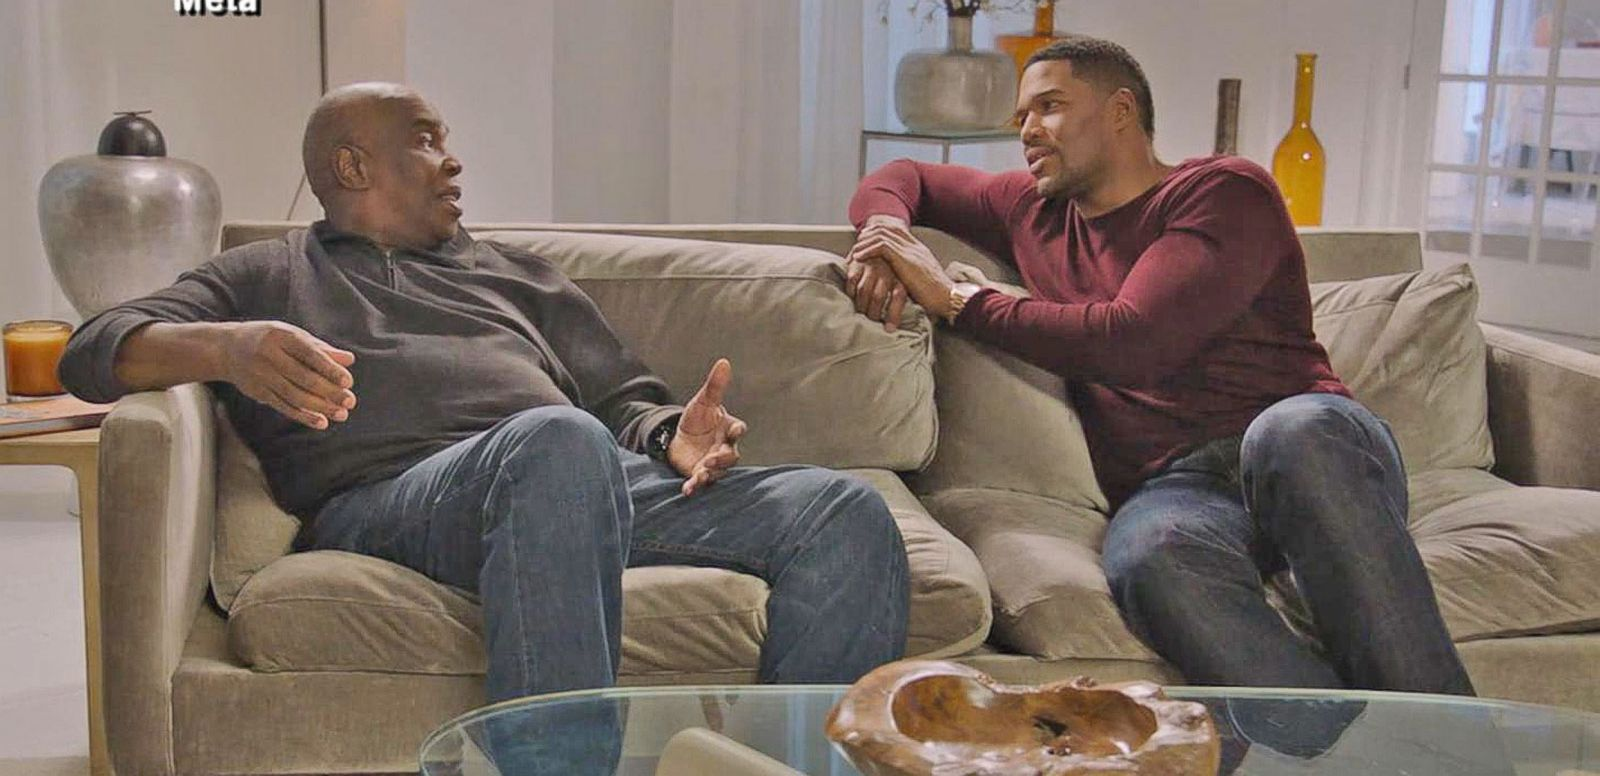 VIDEO: How to Talk to Your Parents About Heart Health